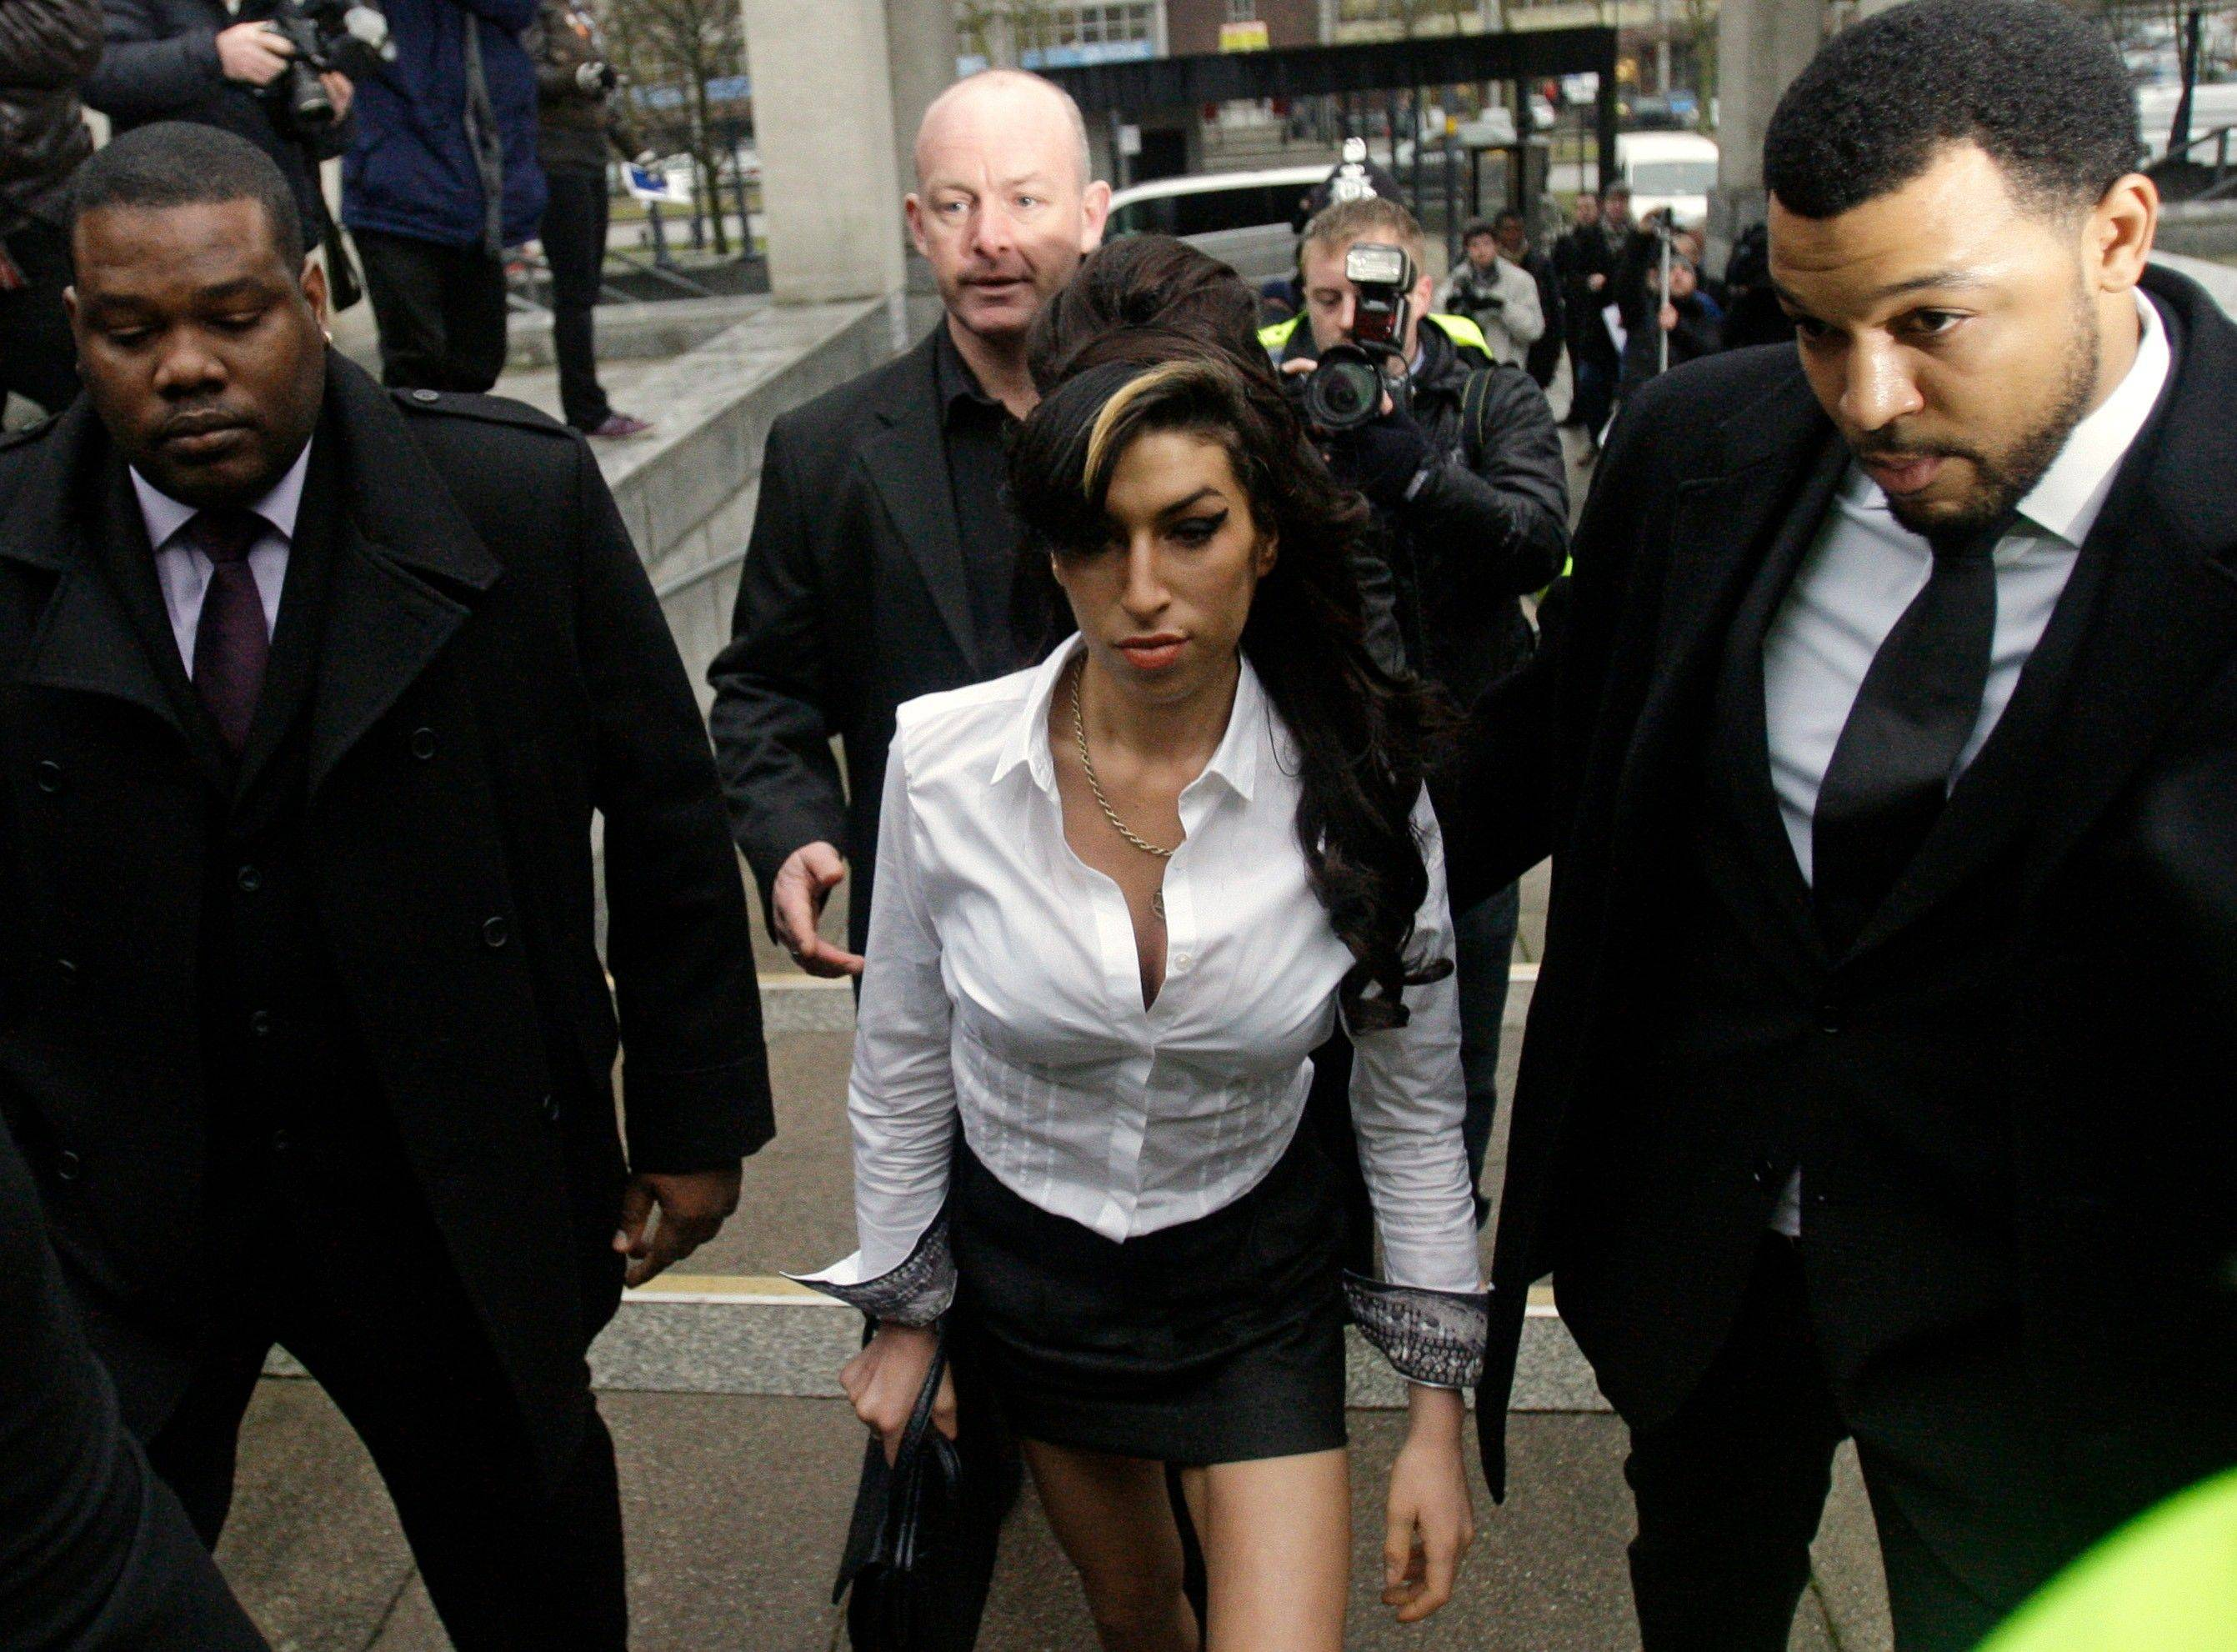 British singer Amy Winehouse, center, arrives at Magistrates Court in Milton Keynes, England where she was suing to keep the paparazzi away from her.